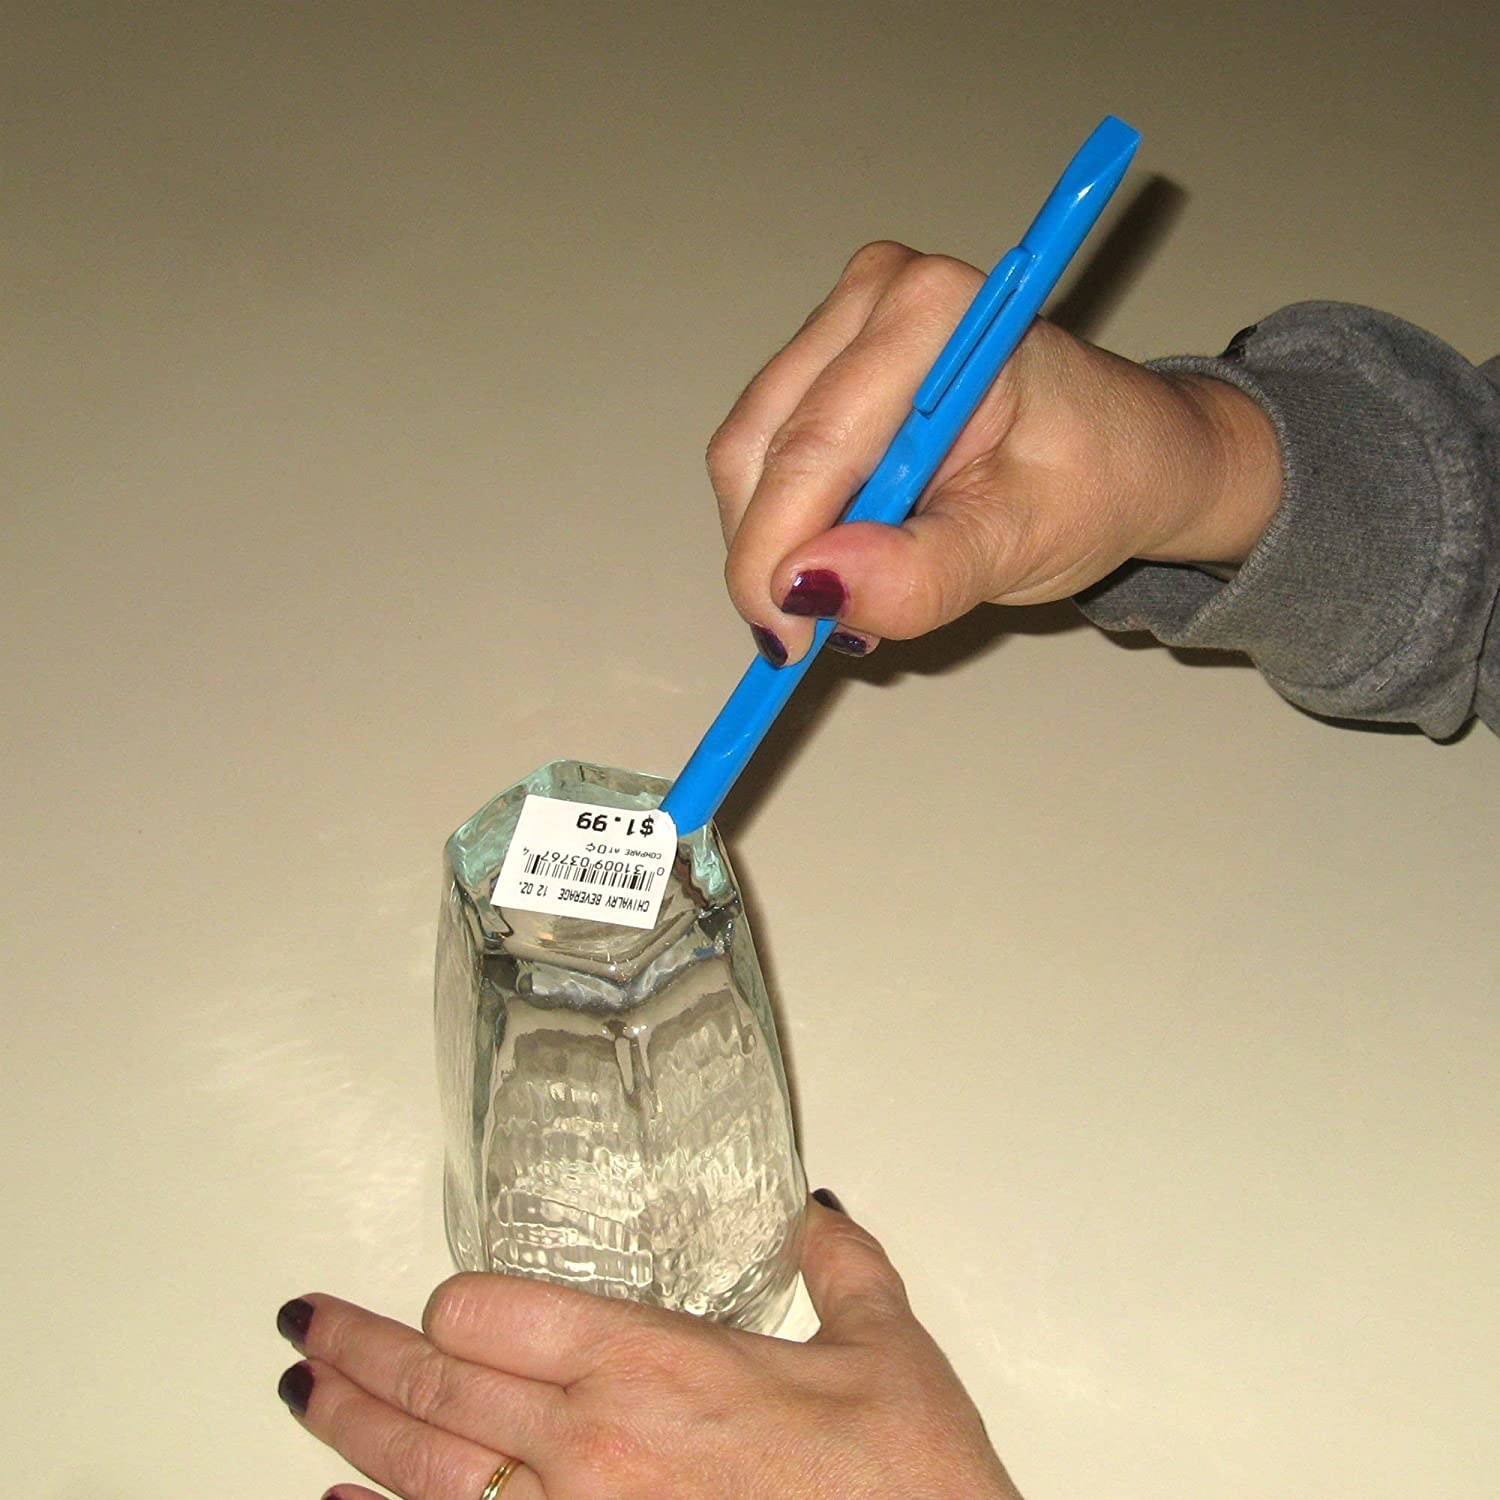 person with painted nails holding pen-like plastic tool in one hand, a glass in another hand, using the tool to scrape off a sticker on the bottom of the glass